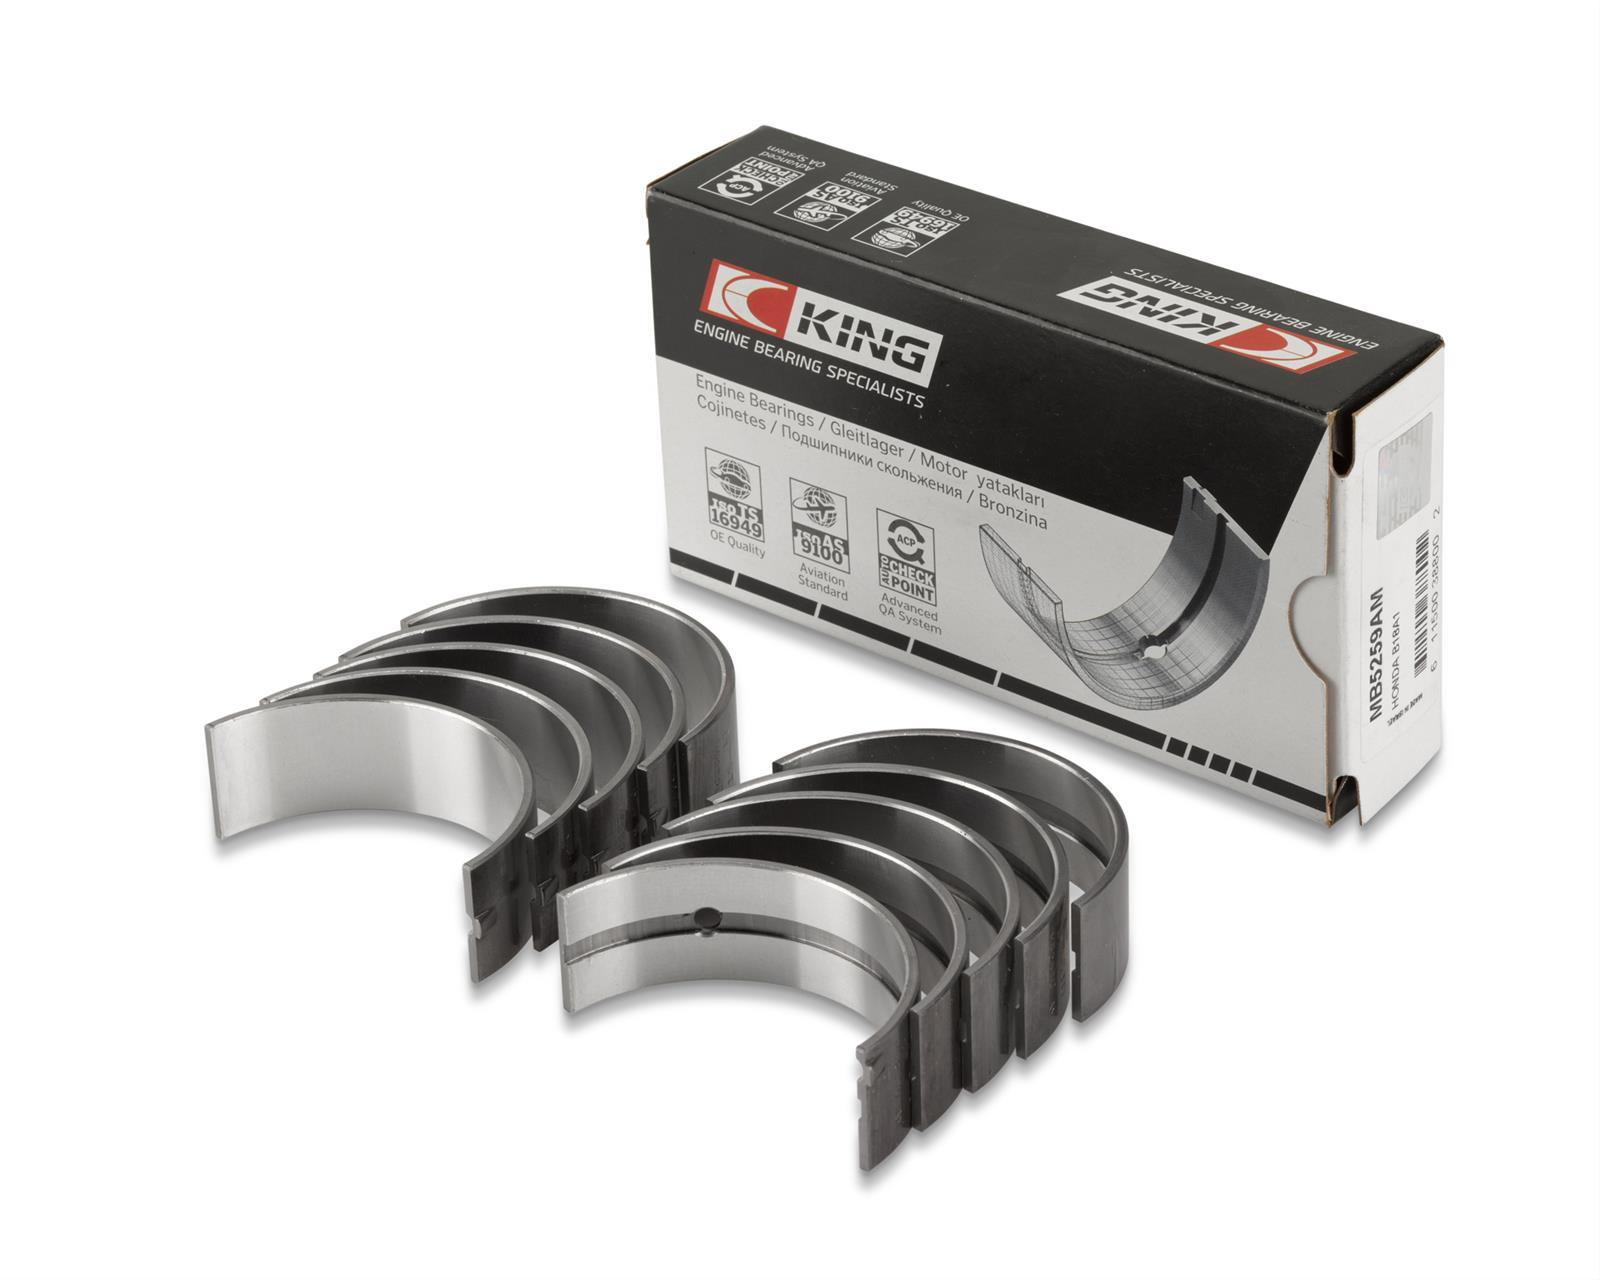 King Bearings - Main Bearing - EJ1 - EB2 - EB3 - EB1 - Honda F22B H22A